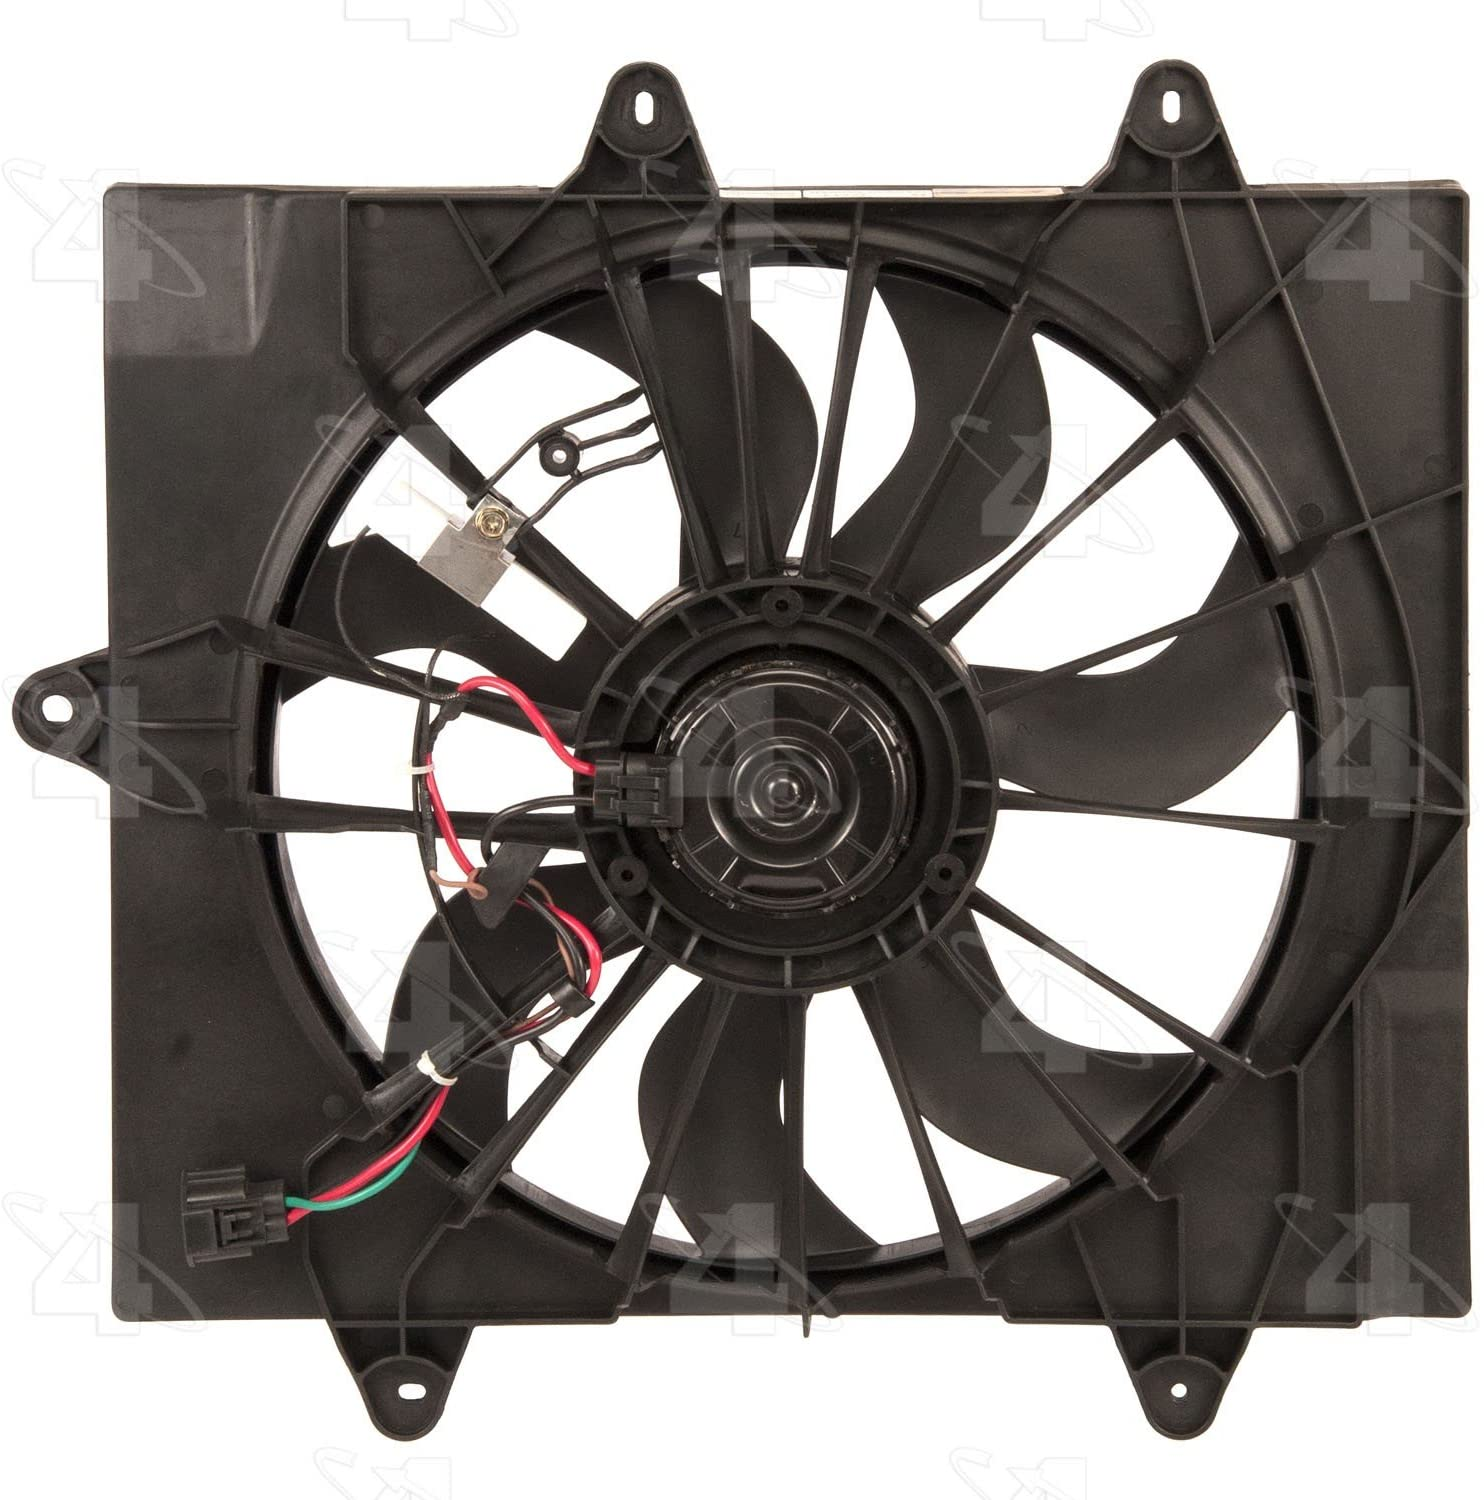 Four Seasons 76006 Radiator Fan Motor Assembly